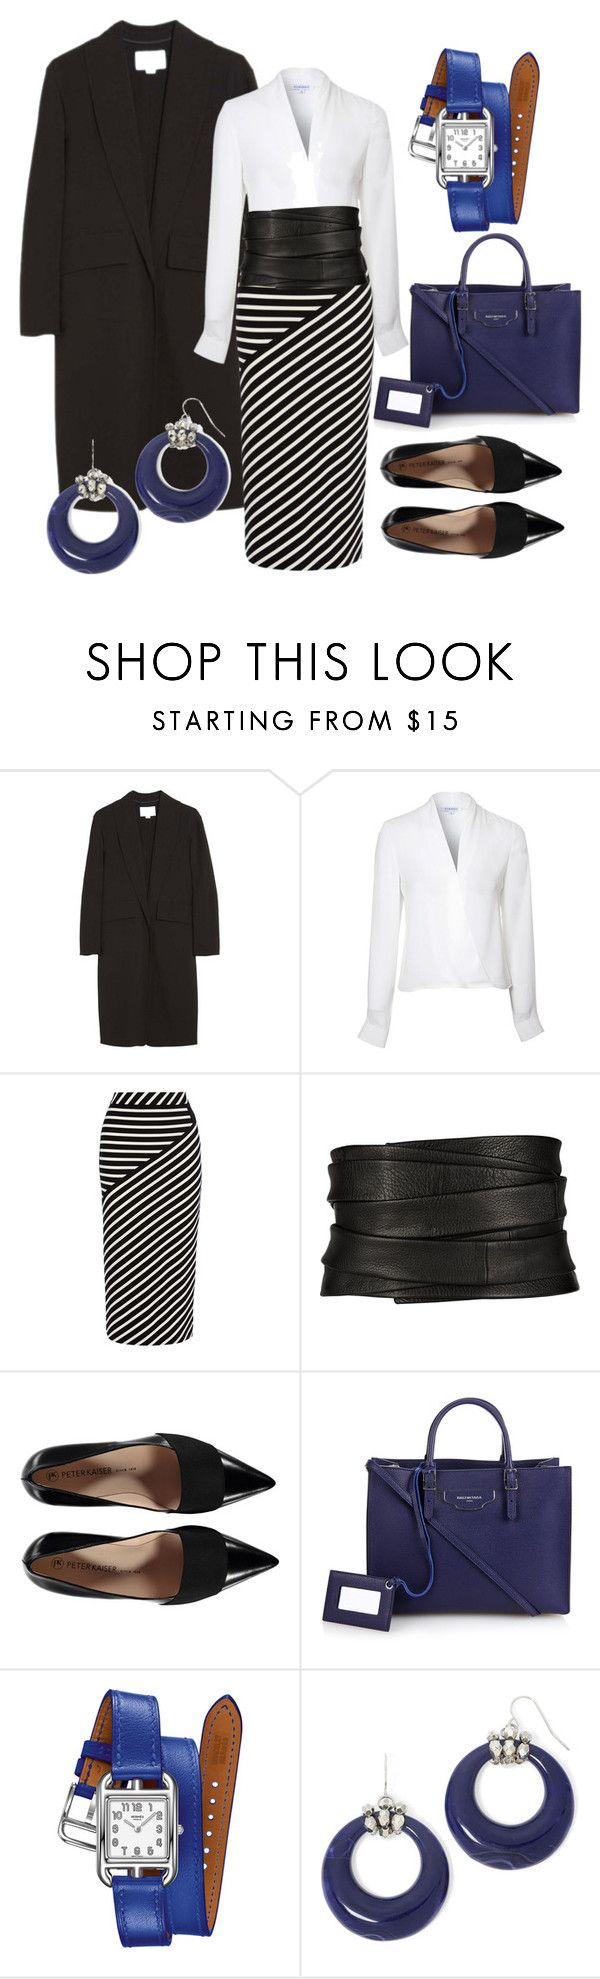 """Legal Eagle"" by bsimon-1 ❤ liked on Polyvore featuring Alexander Wang, Lipsy, Karen Millen, The Row, Balenciaga, Hermès and Mixit"